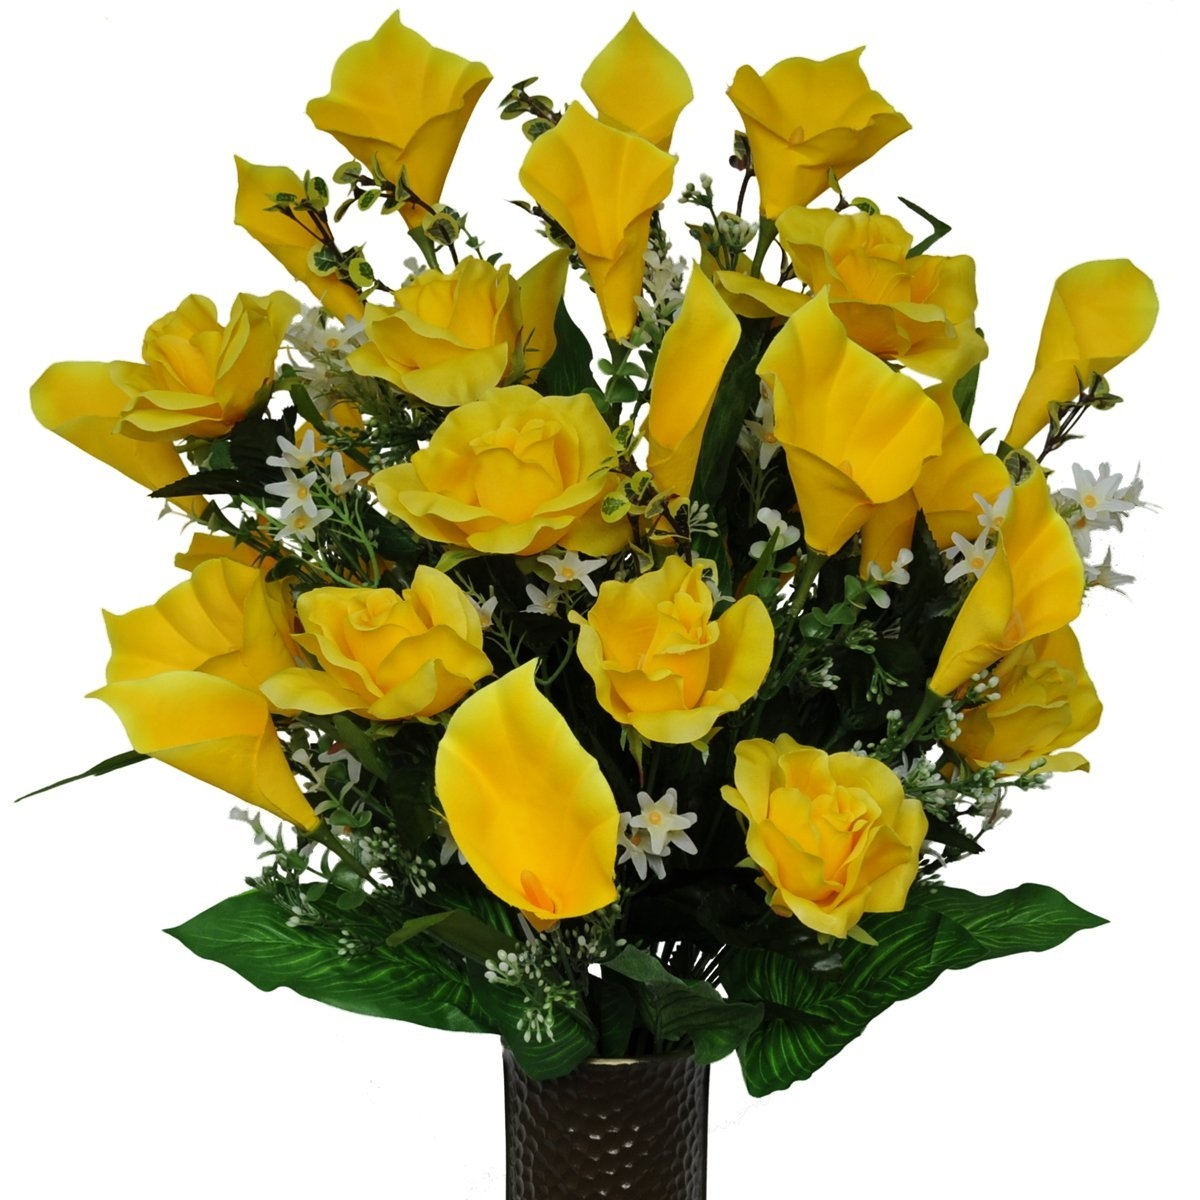 Yellow Rose and Calla Lily Mix Artificial Bouquet, featuring the Stay-In-The-Vase Design(c) Flower Holder (MD1138)